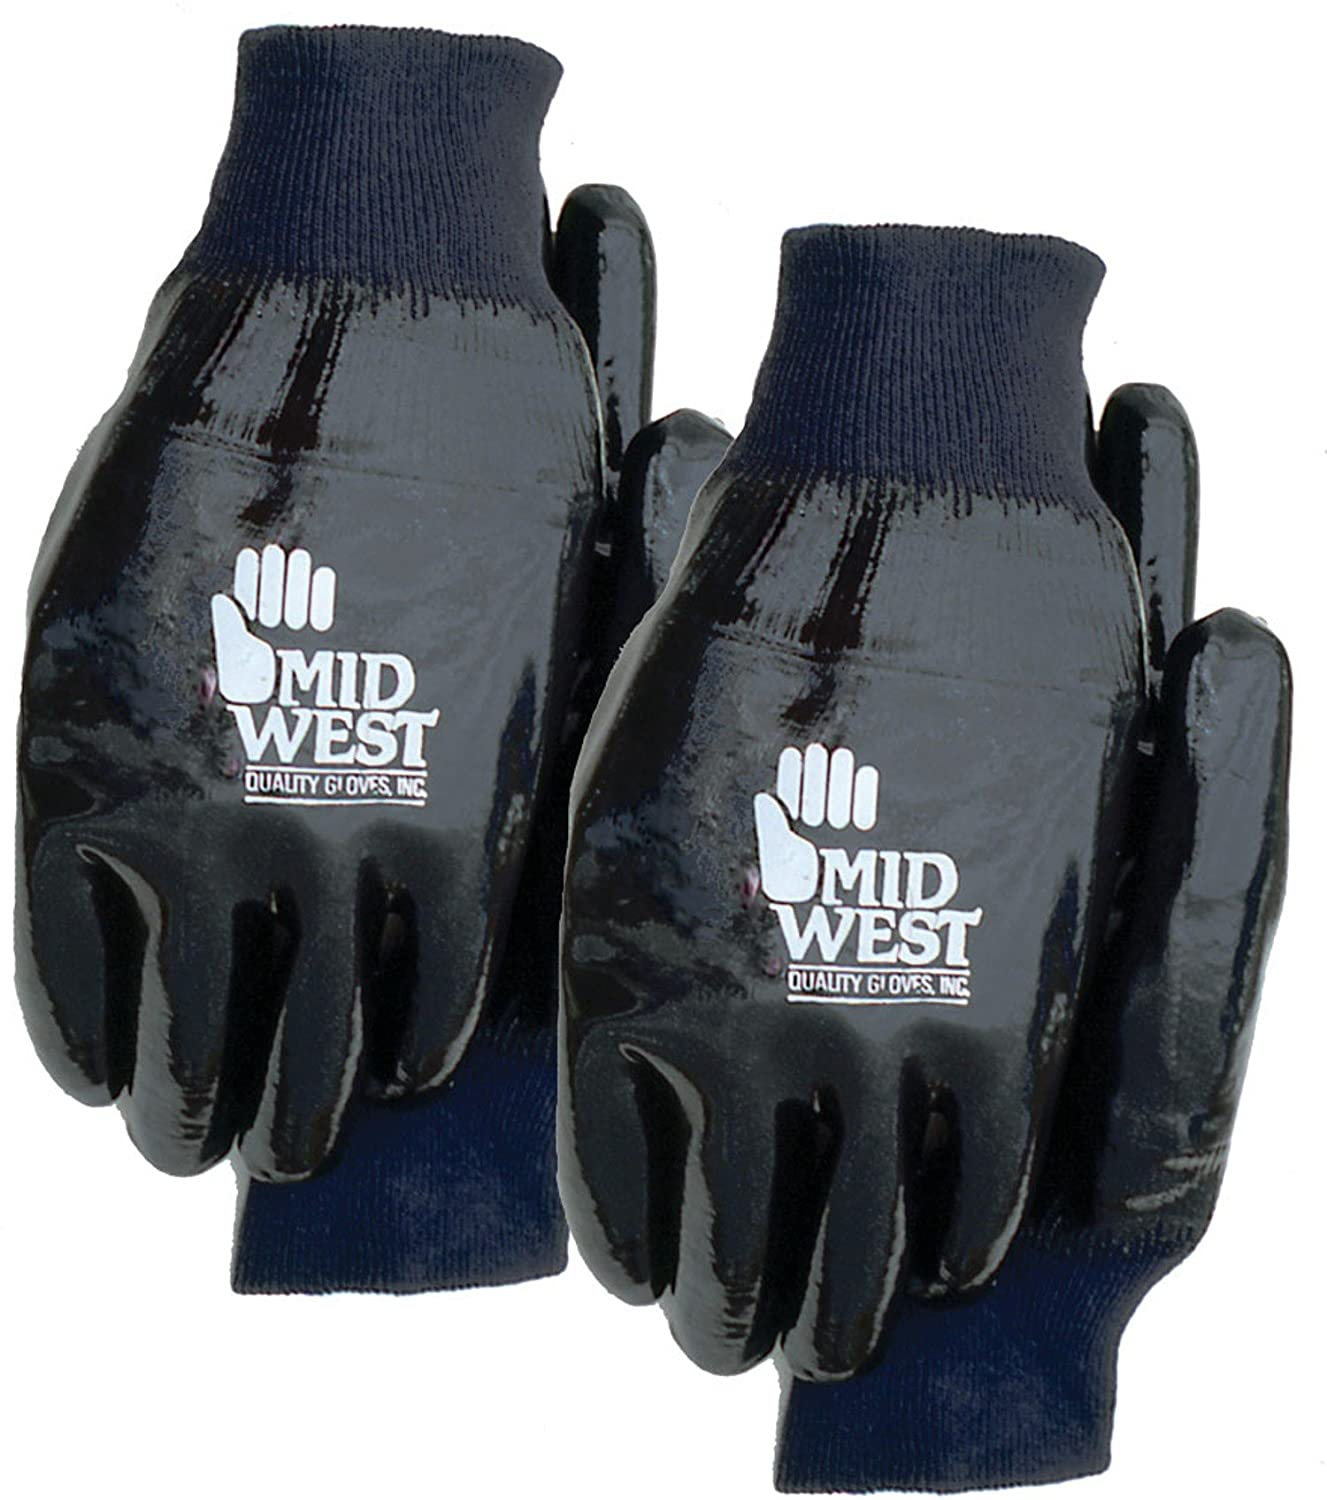 Midwest Gloves and Gear 5122P02-L-AZ-6 Neoprene and Cotton Lined Work Glove, Large, 2-Pack by Midwest Gloves & Gear B00EARD4TI